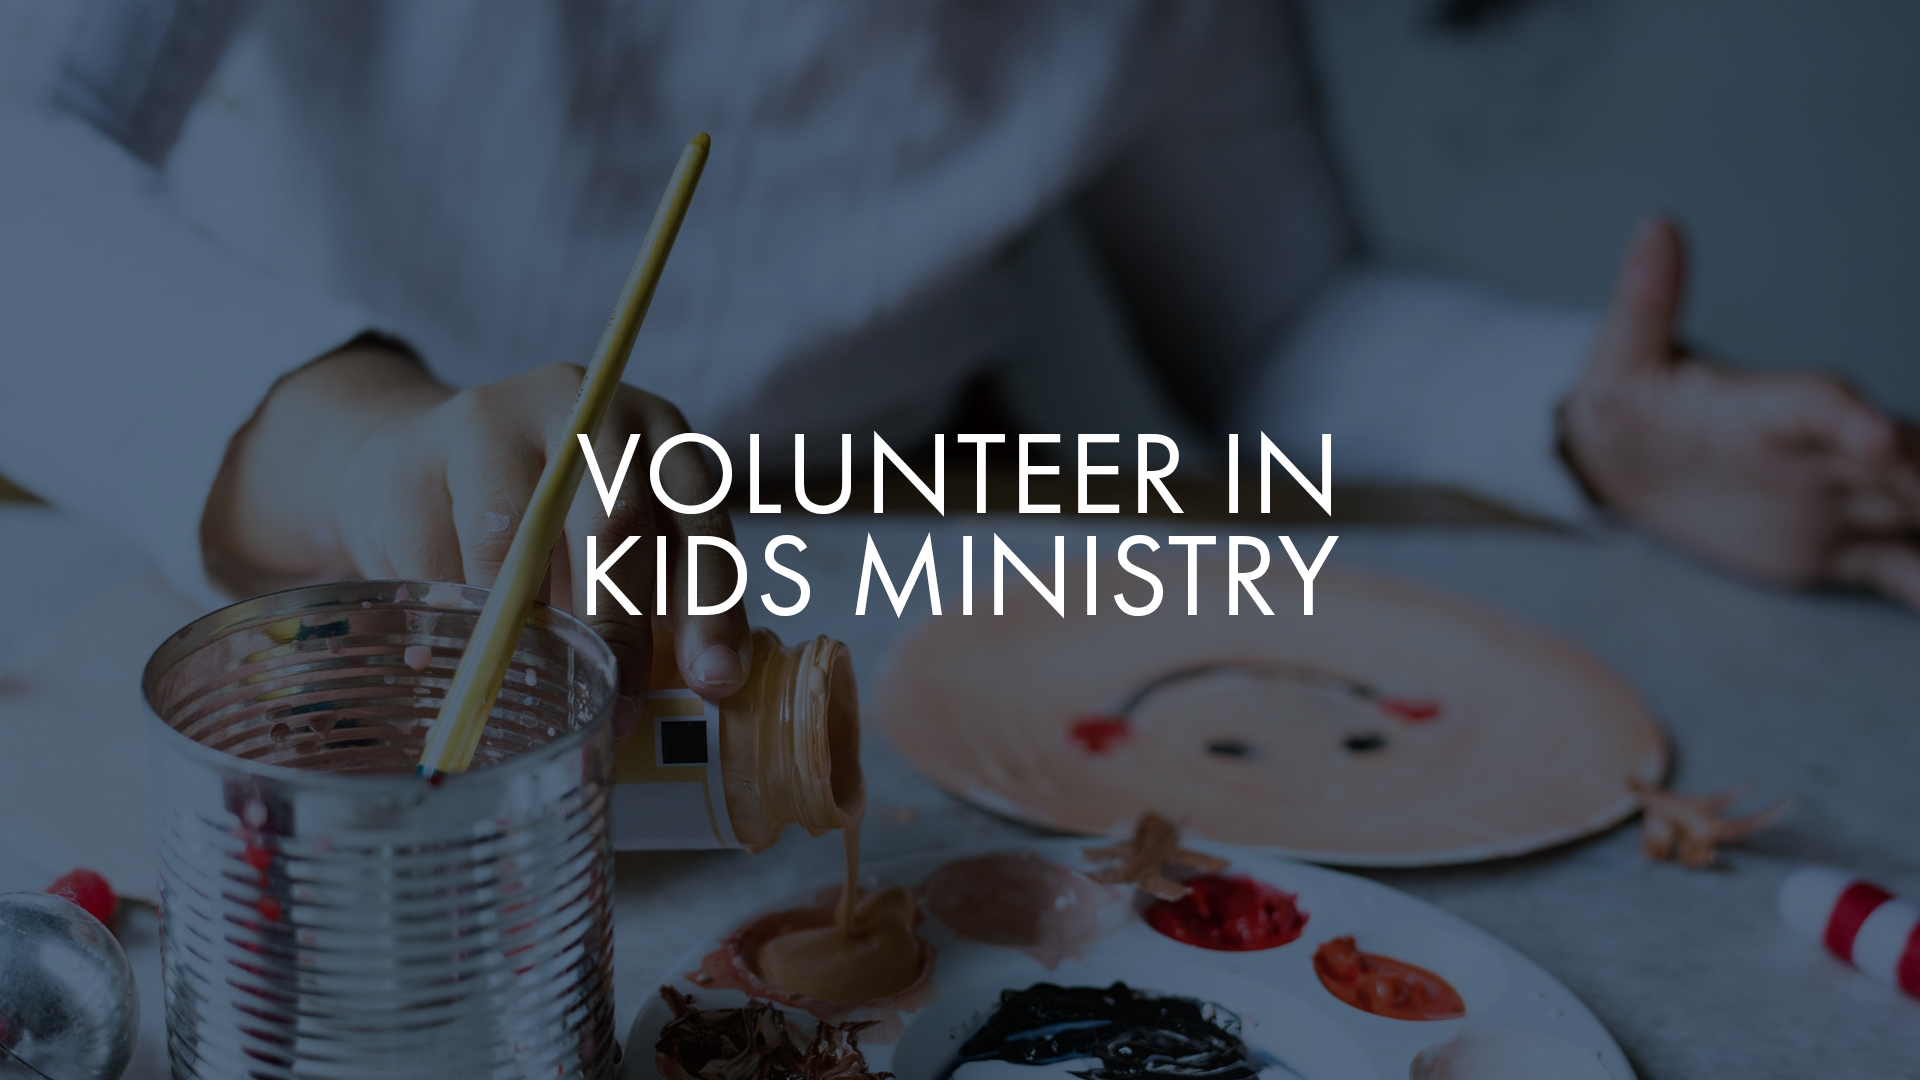 Volunteer in Kids Ministry - One Love Kids would love your help! We're looking for anyone that would like to teach our kids on Sunday mornings. If you're interested, please email us at info@1lovechurch.com with your name and we'll get you connected!